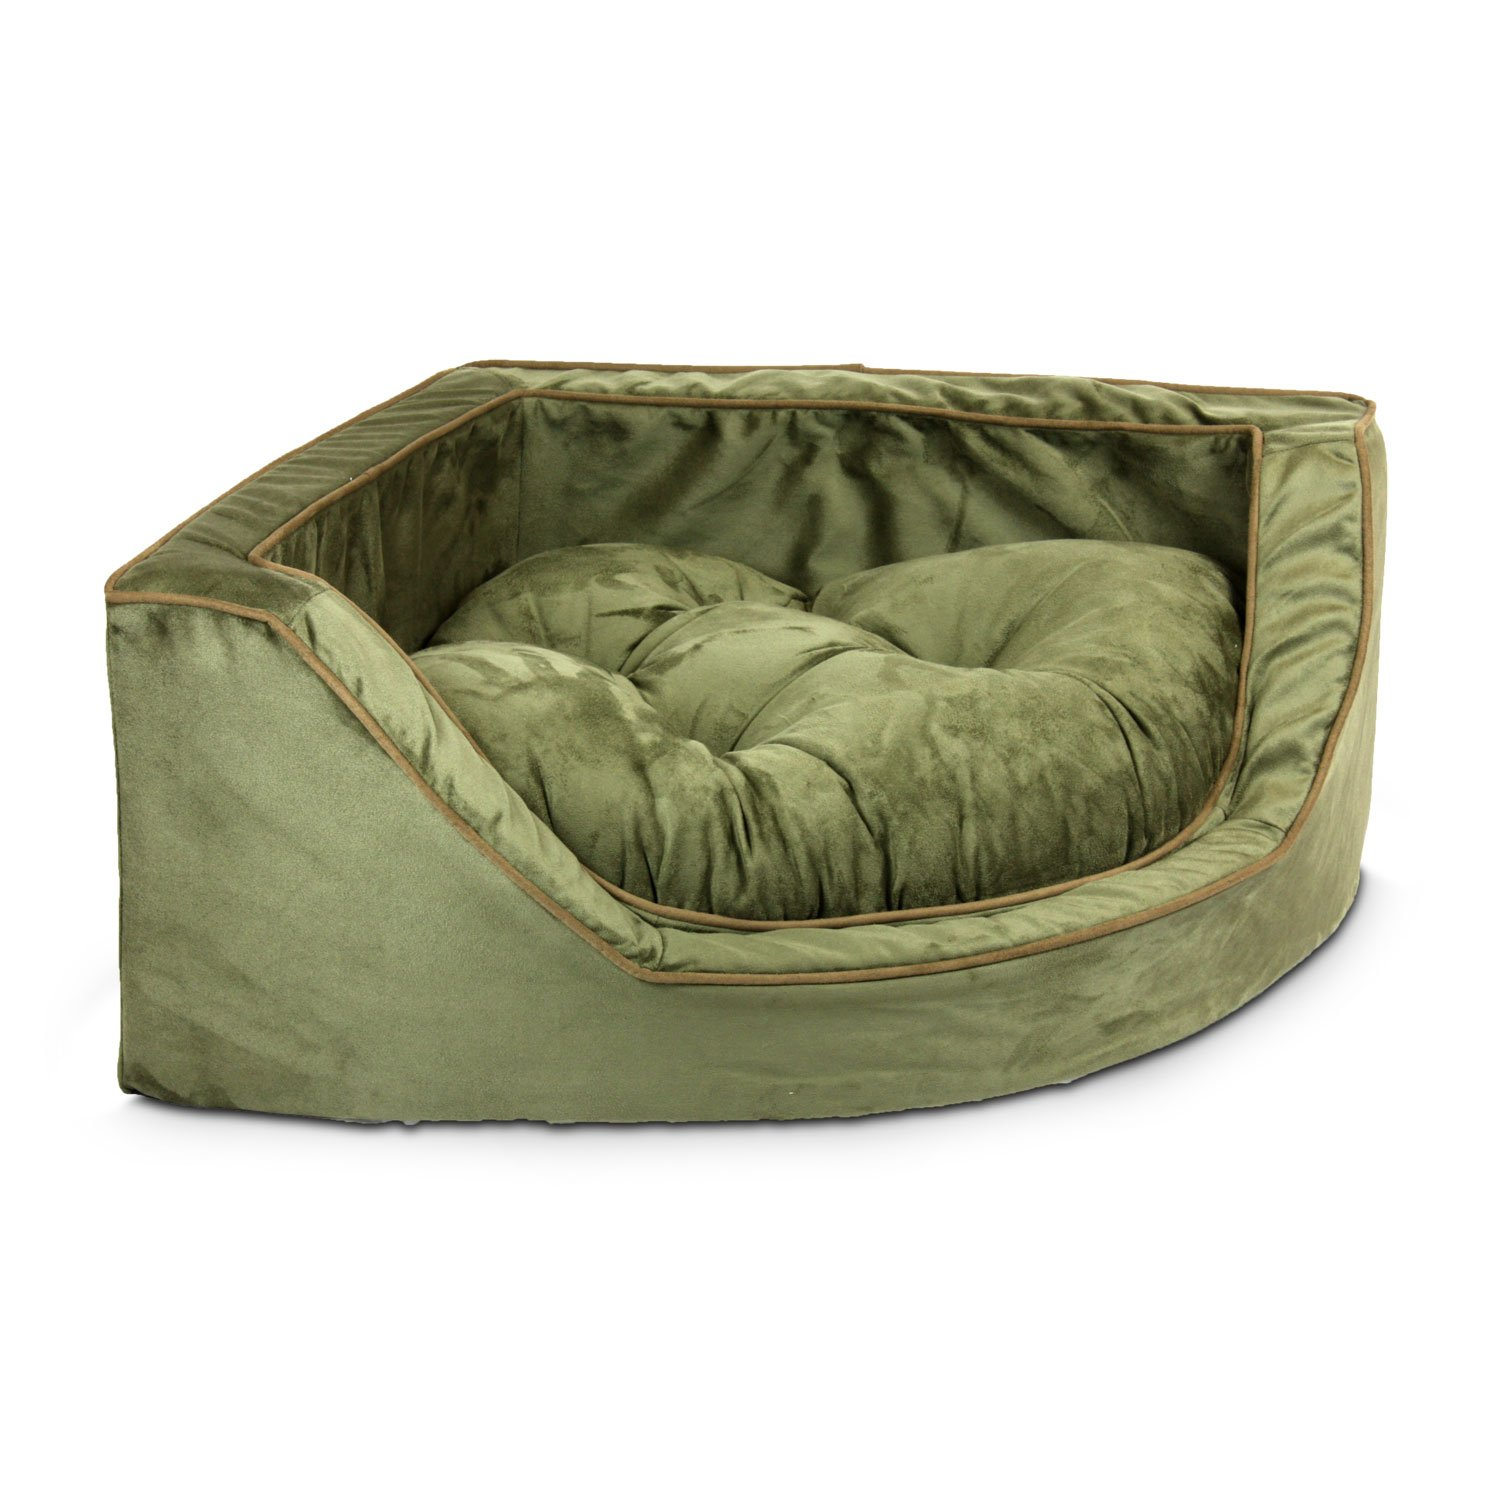 Snoozer Luxury Corner Bed in Olive with Coffee Cording 25 L x 25 W Medium Green  Brown